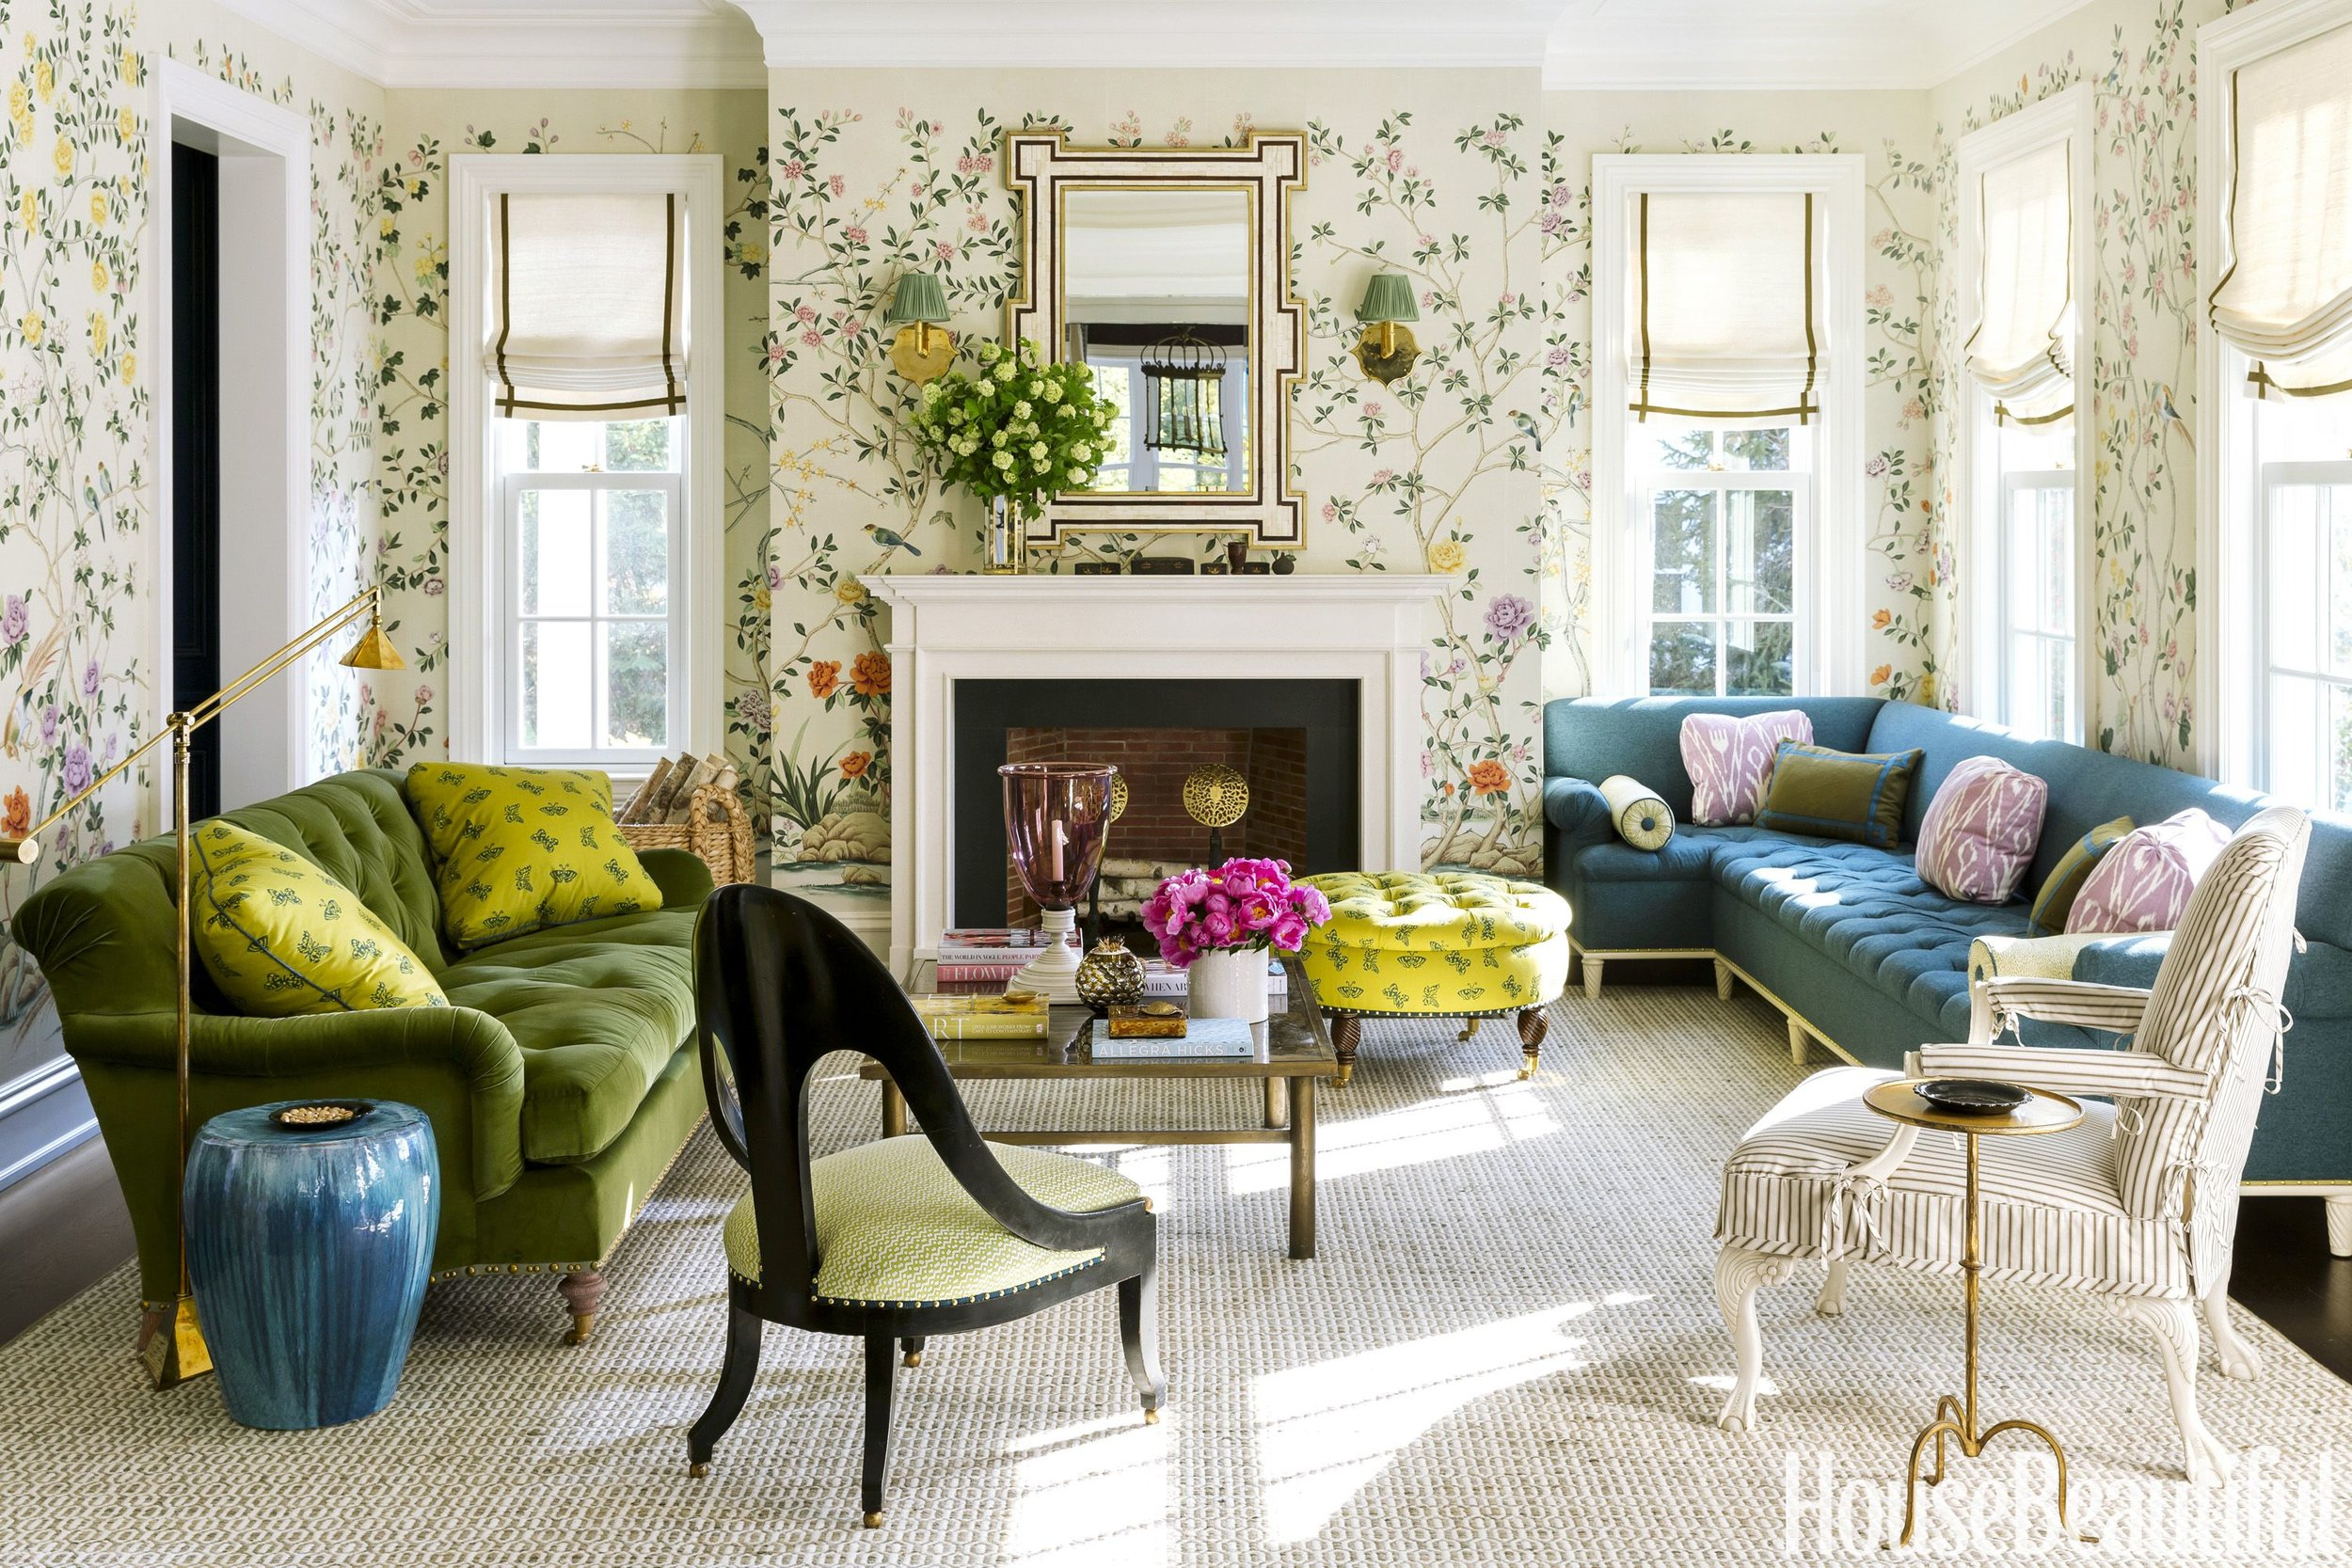 design by  ashley whittaker  / photography by  read mckendree  / featured in  house beautiful